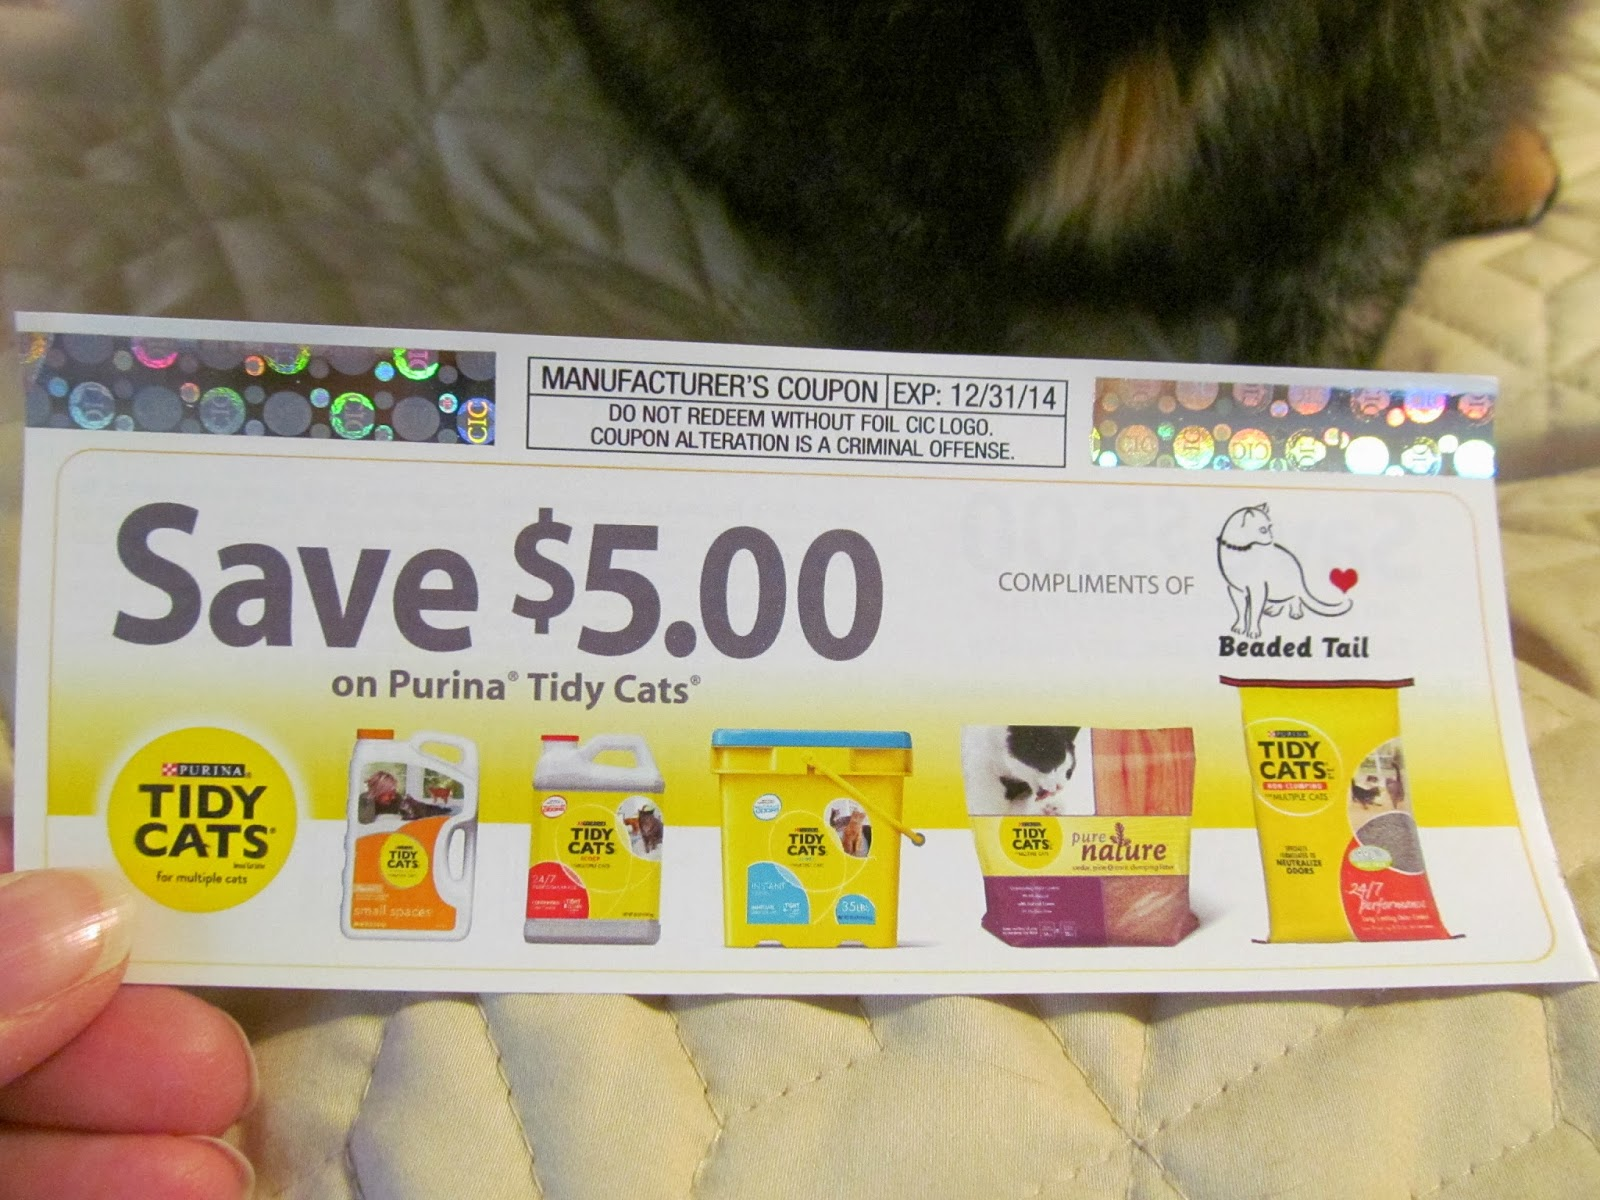 Like Purina coupons? Try these...